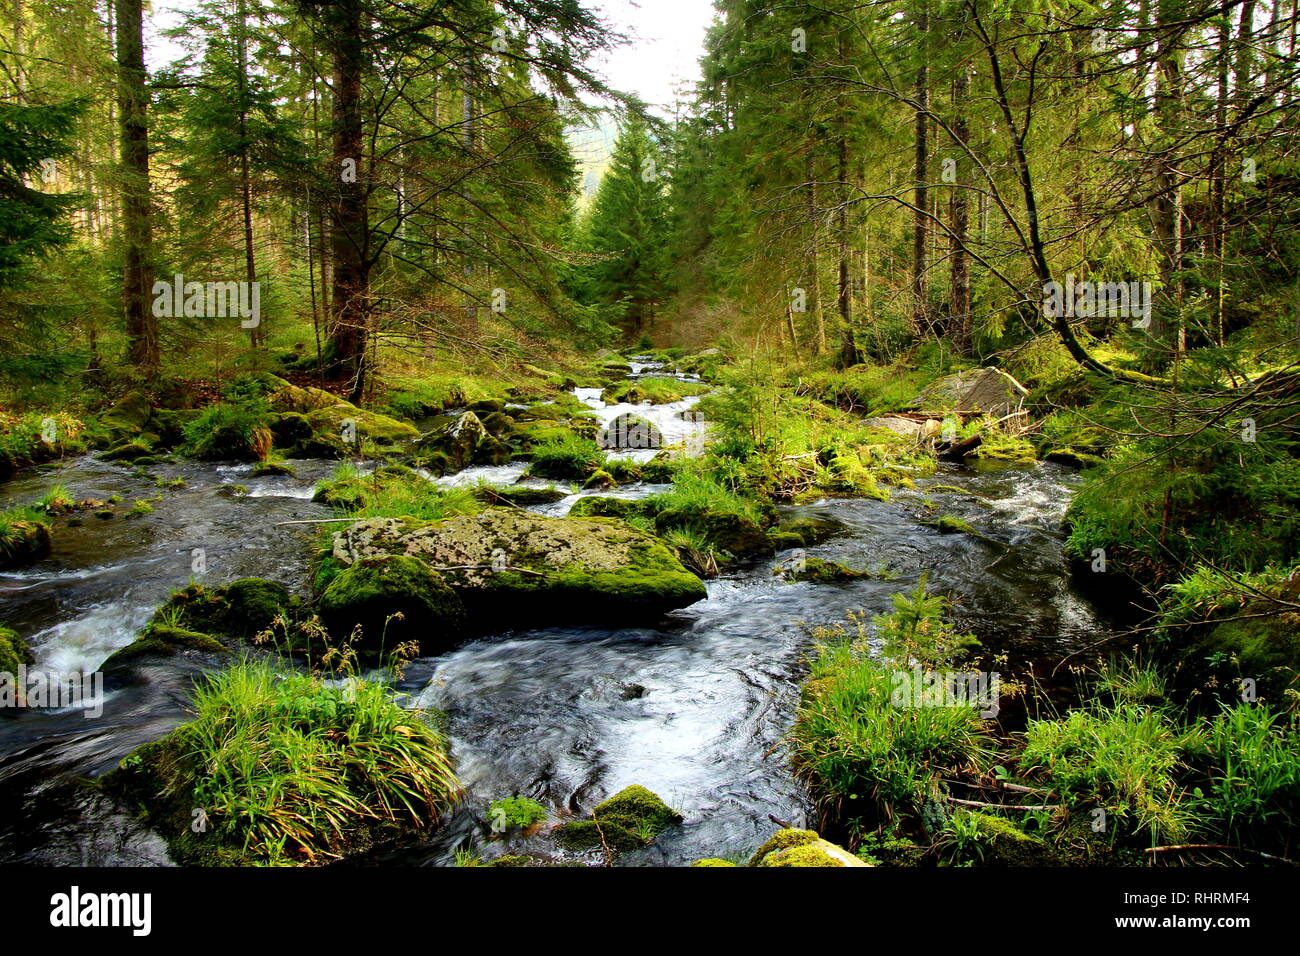 Stream in the pine forest on Black Forest mountain. - Stock Image